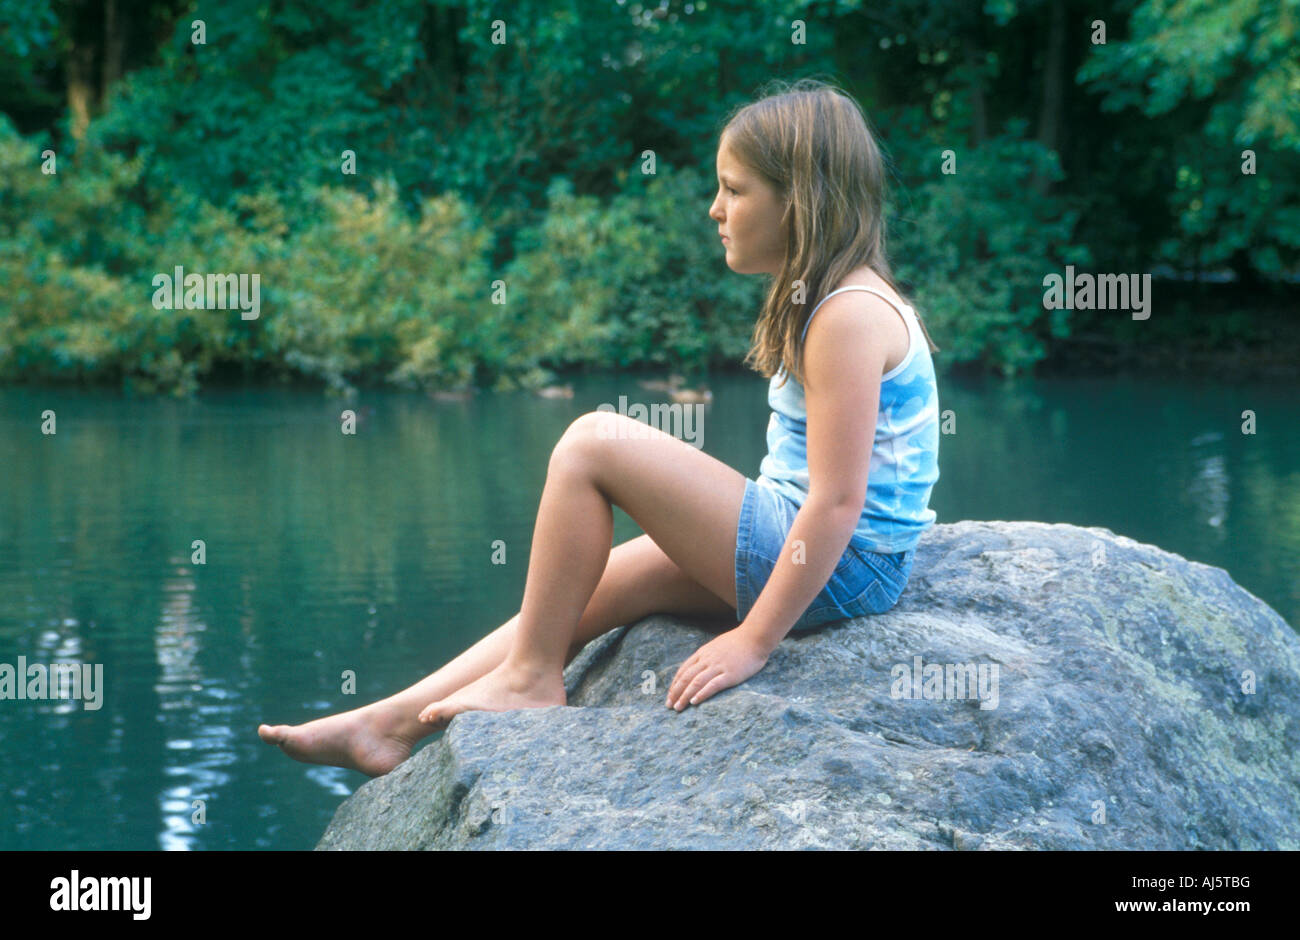 Girl sitting on rock thought you